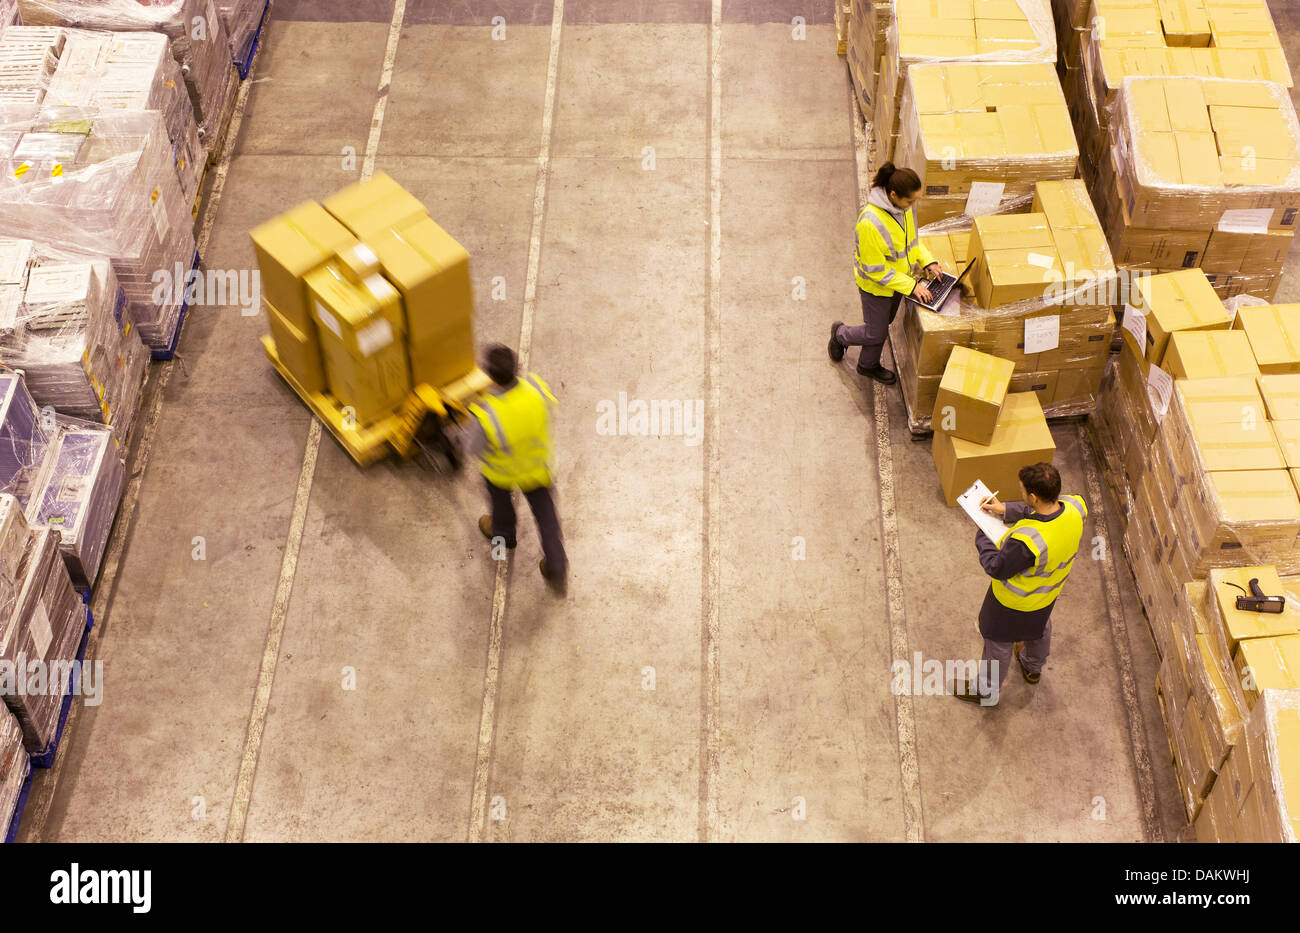 Workers carting boxes in warehouse - Stock Image